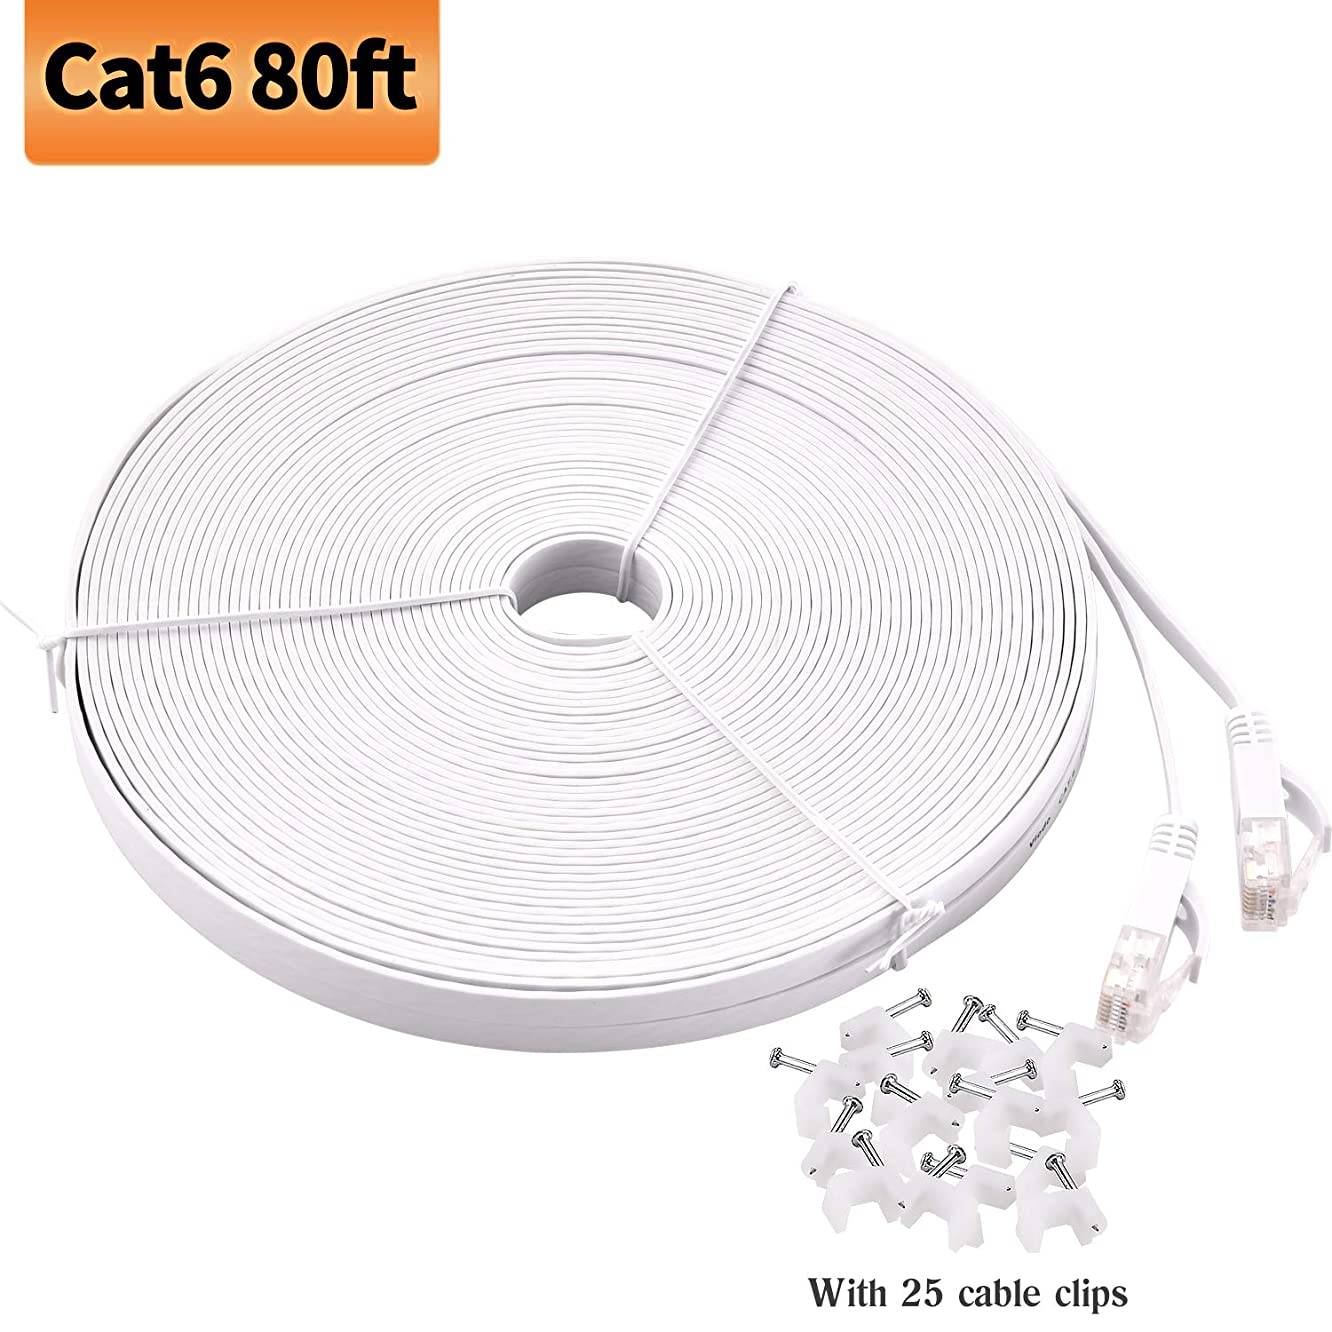 Viodo Compatible with Cat 6 Ethernet Cable,Flat Internet Network LAN Patch Cords, Solid Cat6 High Speed Computer Wire with Clips & Snagless Rj45 - More Feet & Colors Choose